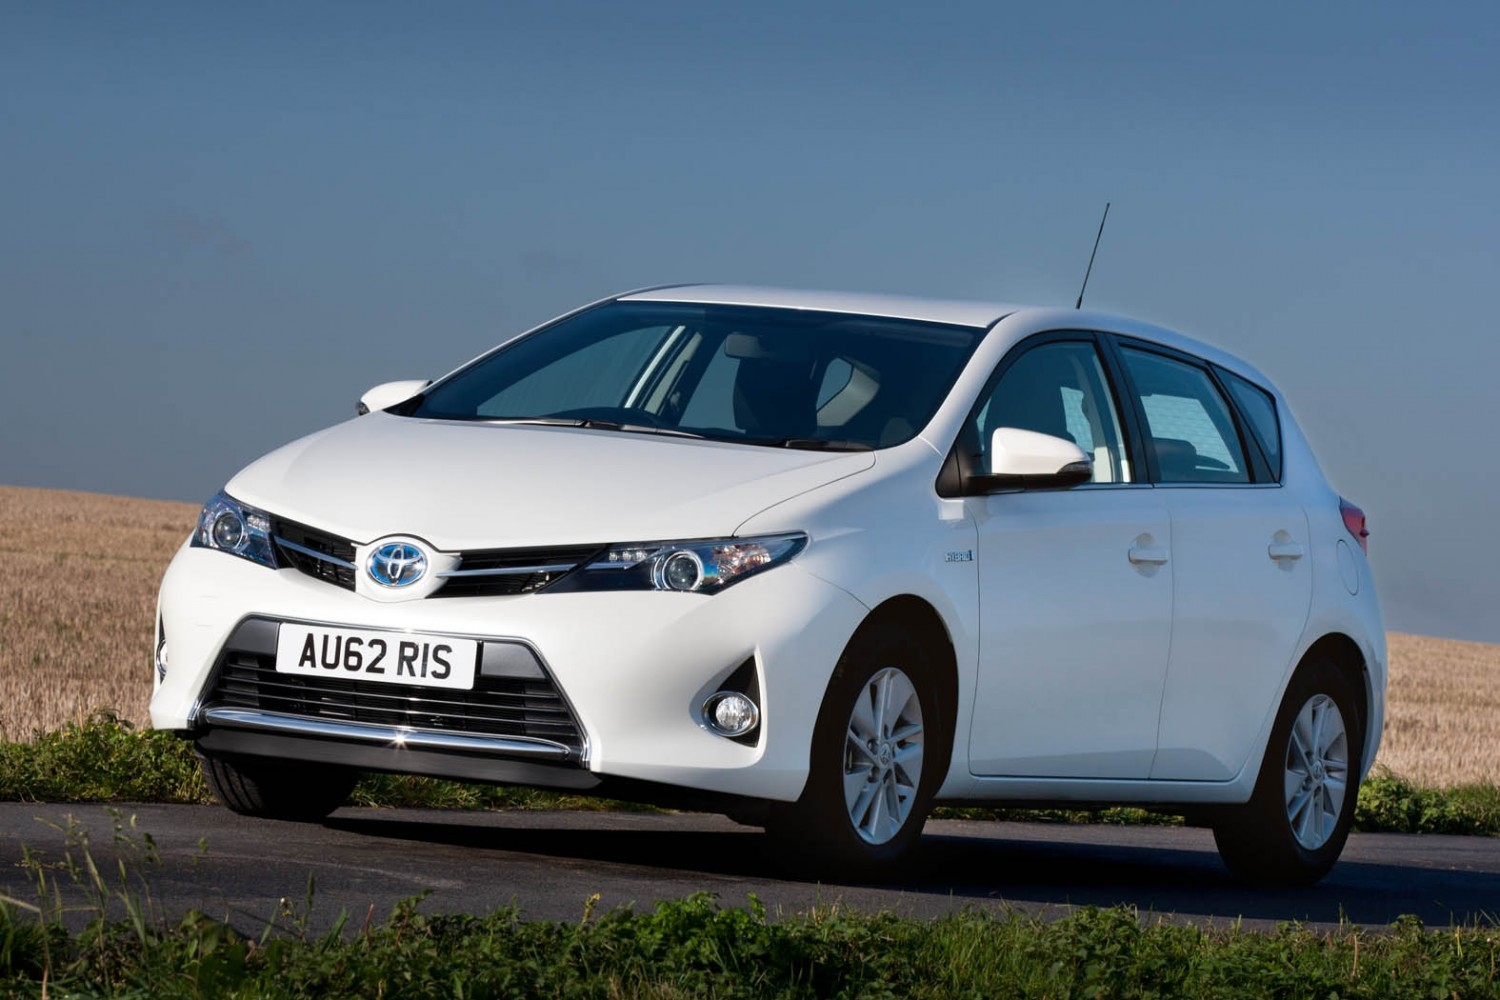 toyota auris used car review eurekar. Black Bedroom Furniture Sets. Home Design Ideas